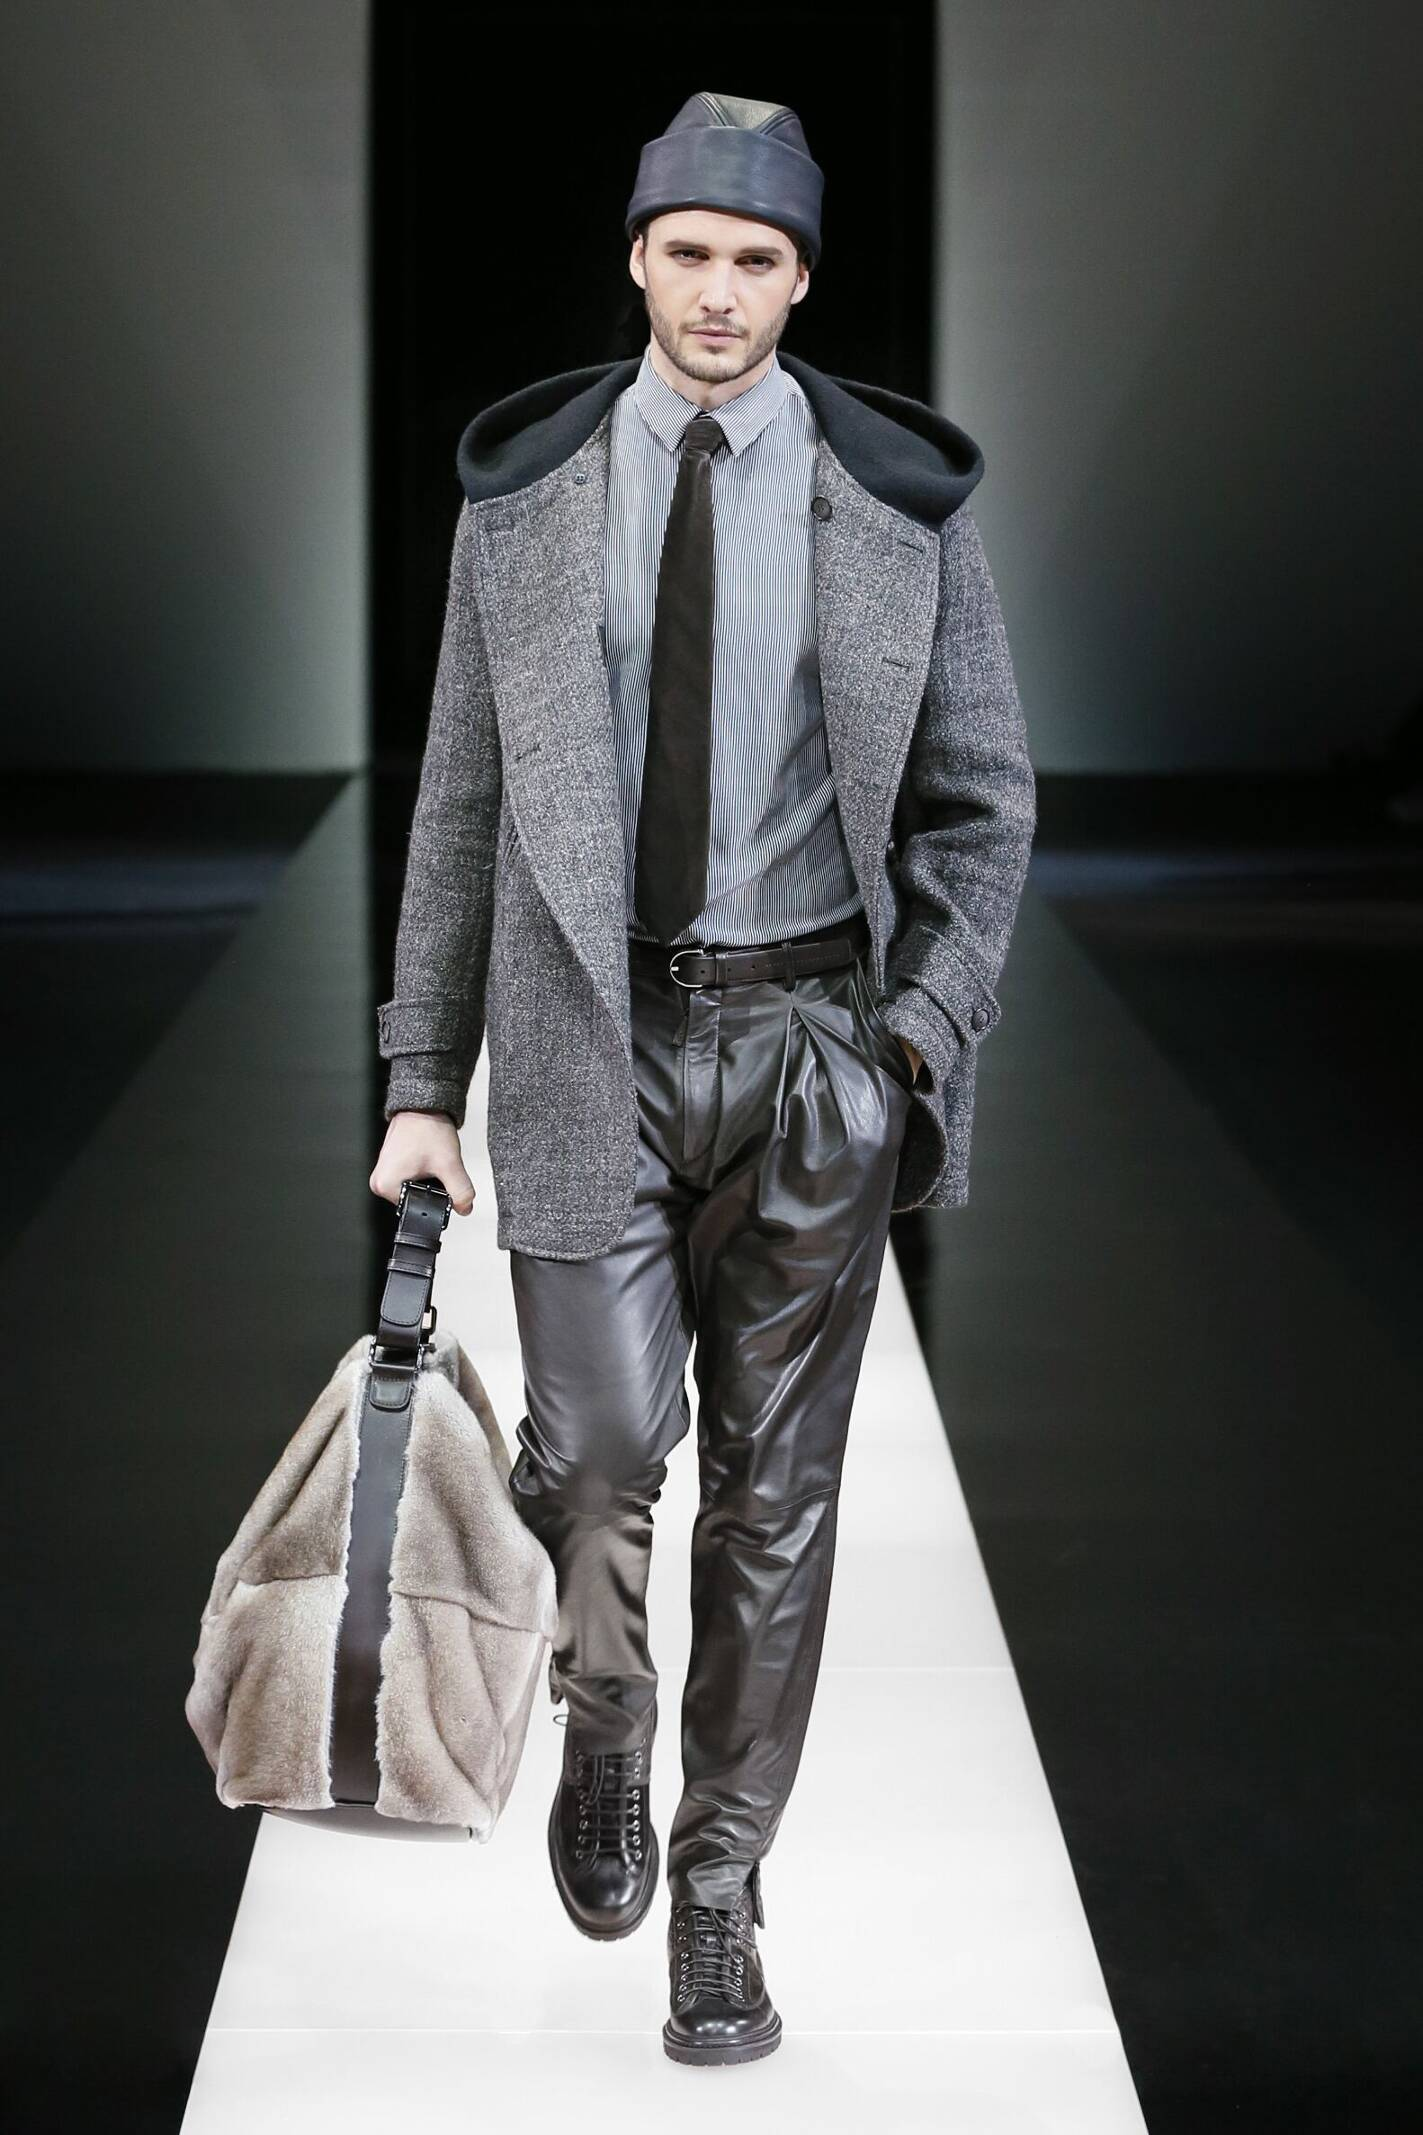 Fashion Man Model Giorgio Armani Collection Catwalk